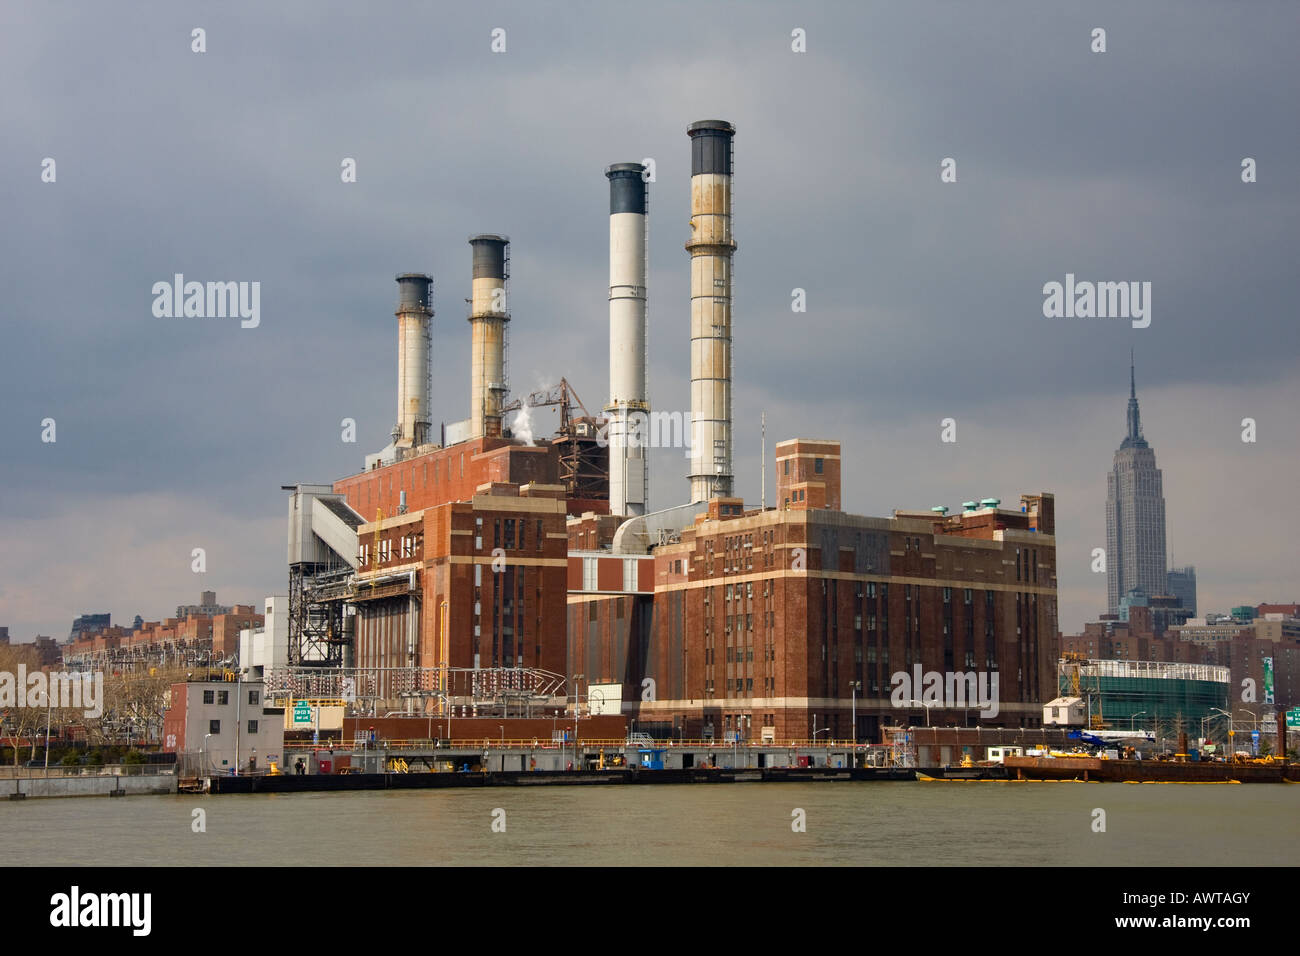 Consolidated Edison Power Plant New York City USA - Stock Image